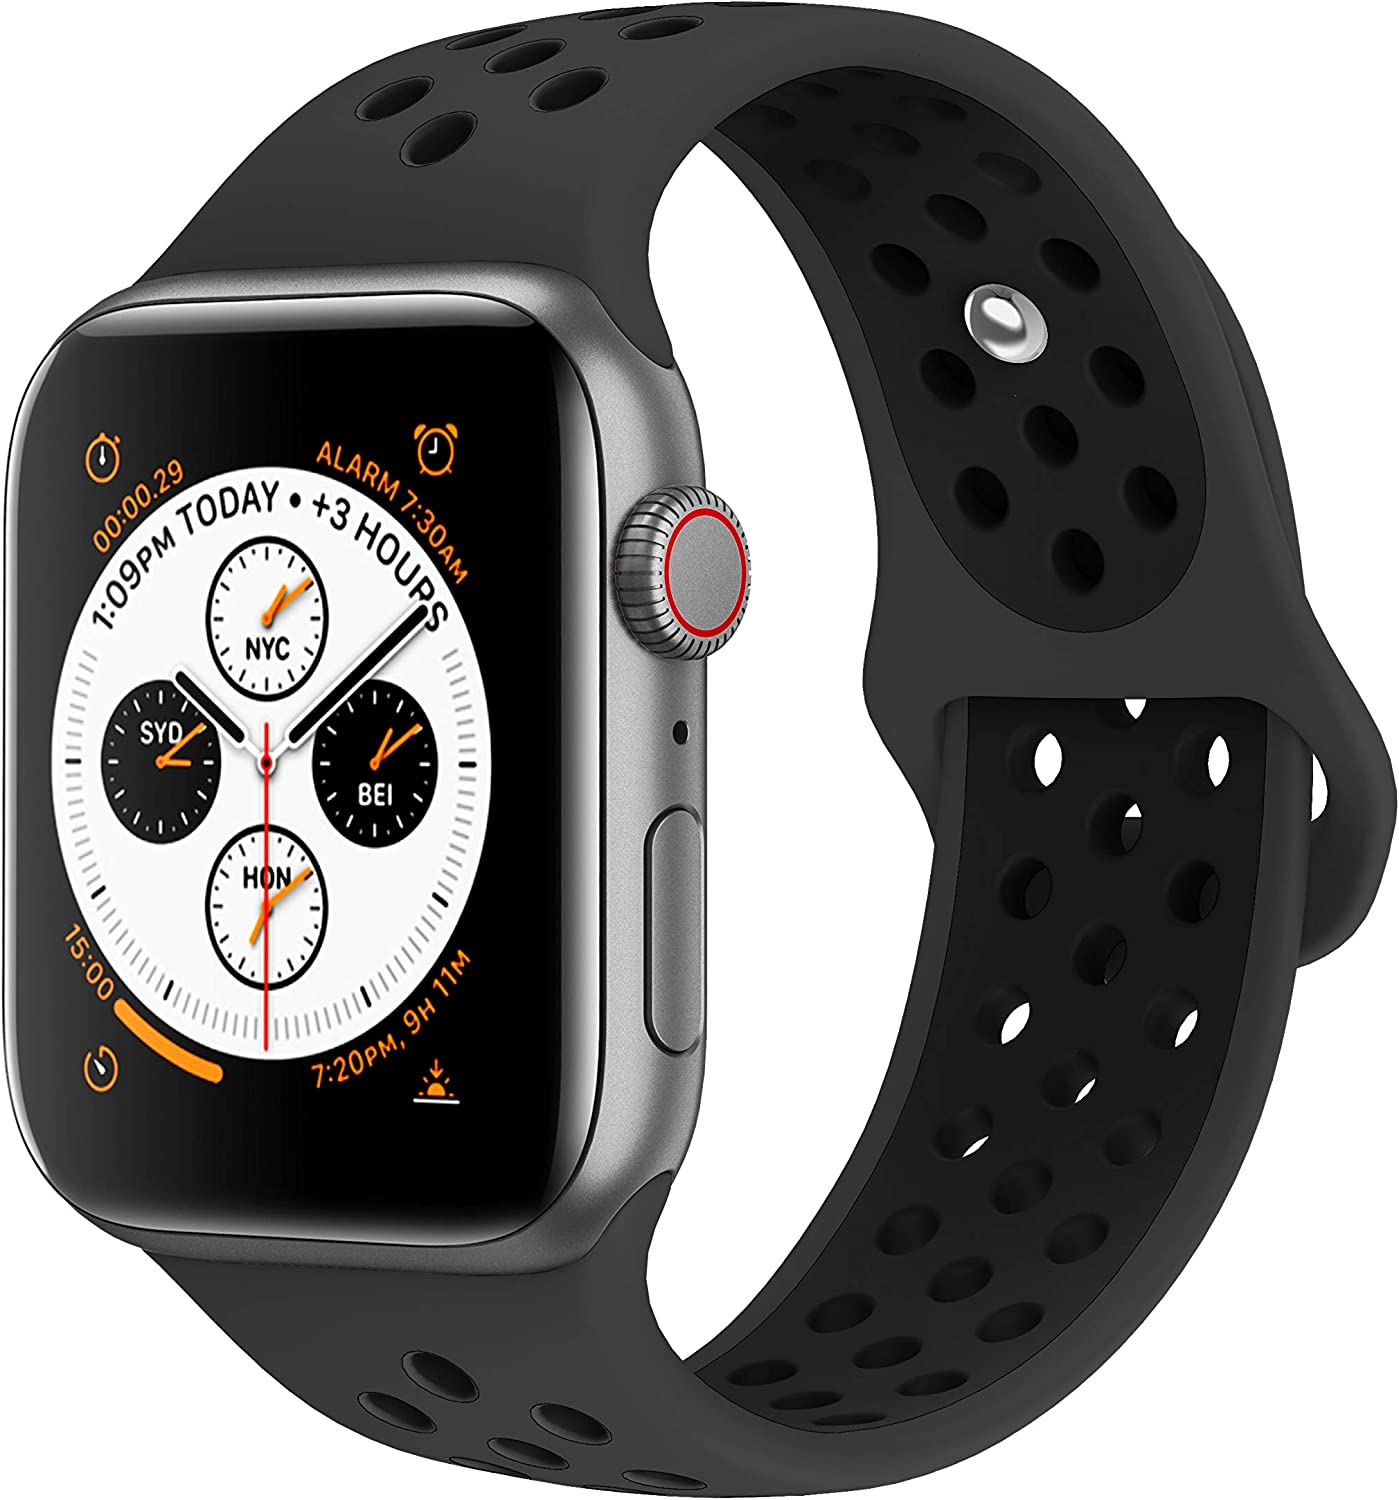 AdMaster Bands Compatible with Apple Watch 38mm 40mm 42mm 44mm, Soft Silicone Replacement Wristband Compatible with iWatch Series 1/2/3/4/5 81NzG3yZ8-L